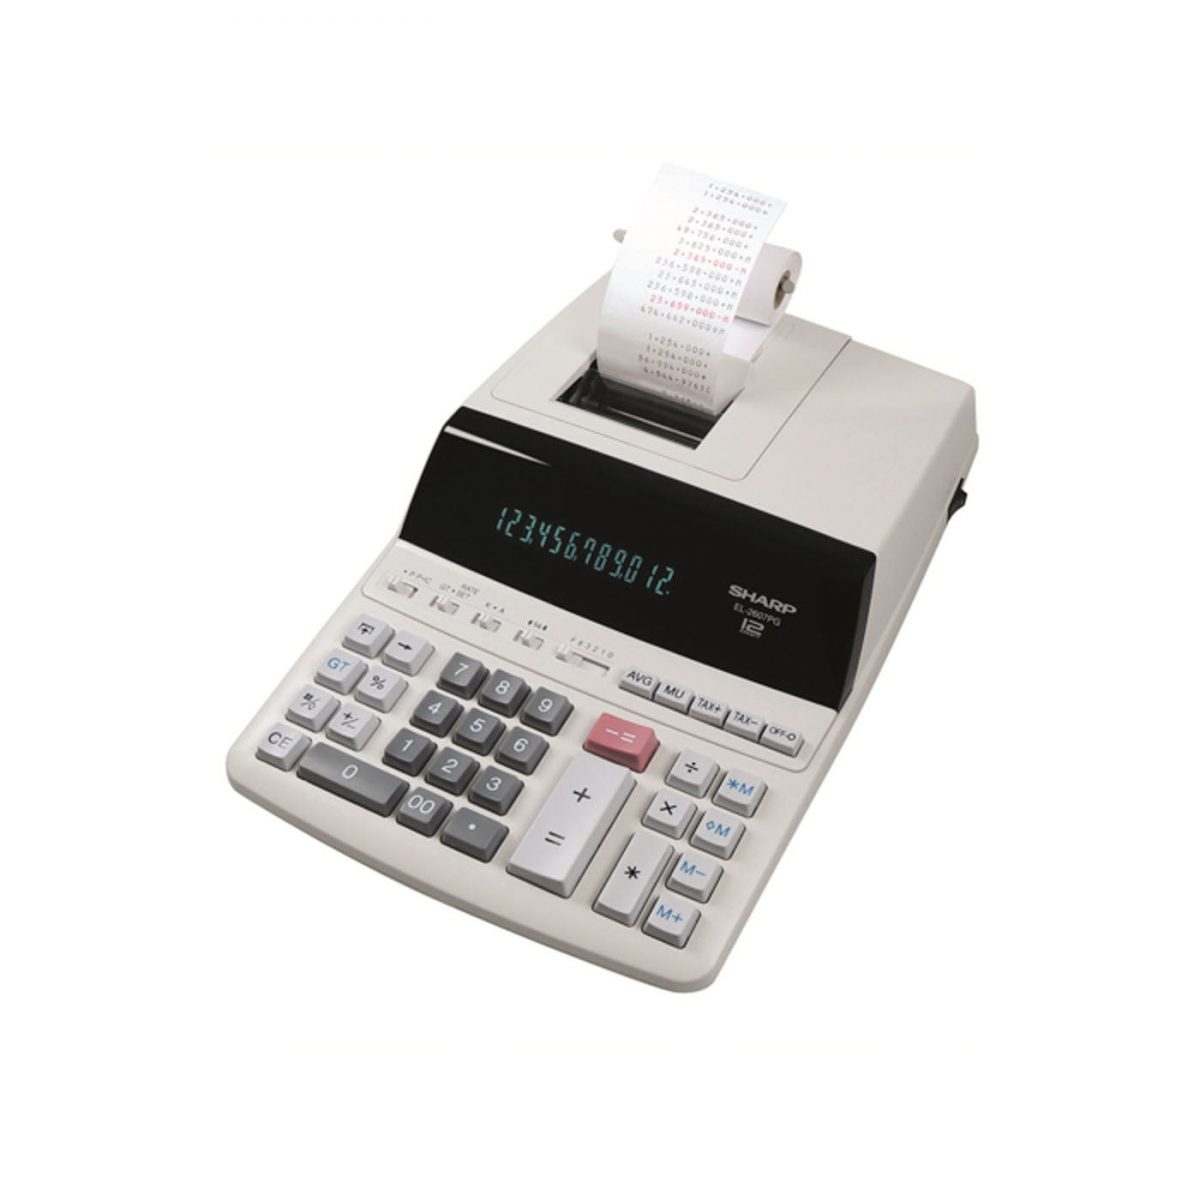 Calculator cu banda, 12 digits, 327 x 221 x 78 mm, SHARP EL-2607PGGYSE - gri